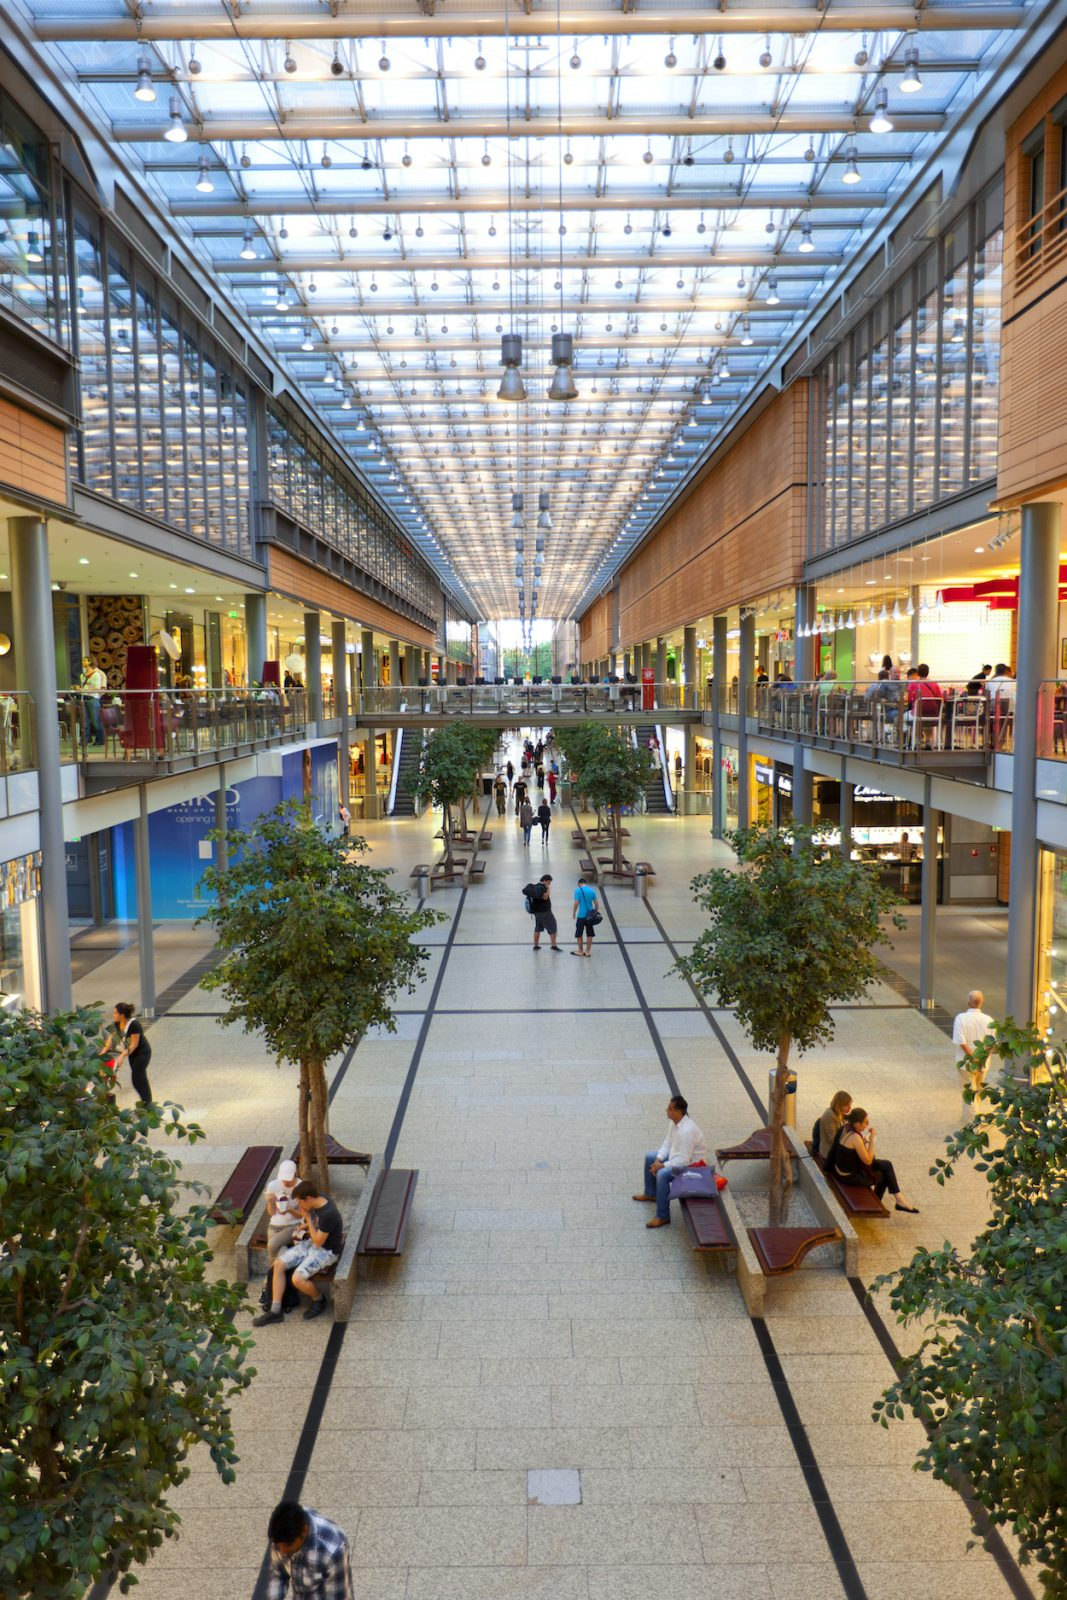 Without proper acoustic design shopping centres can be noisy